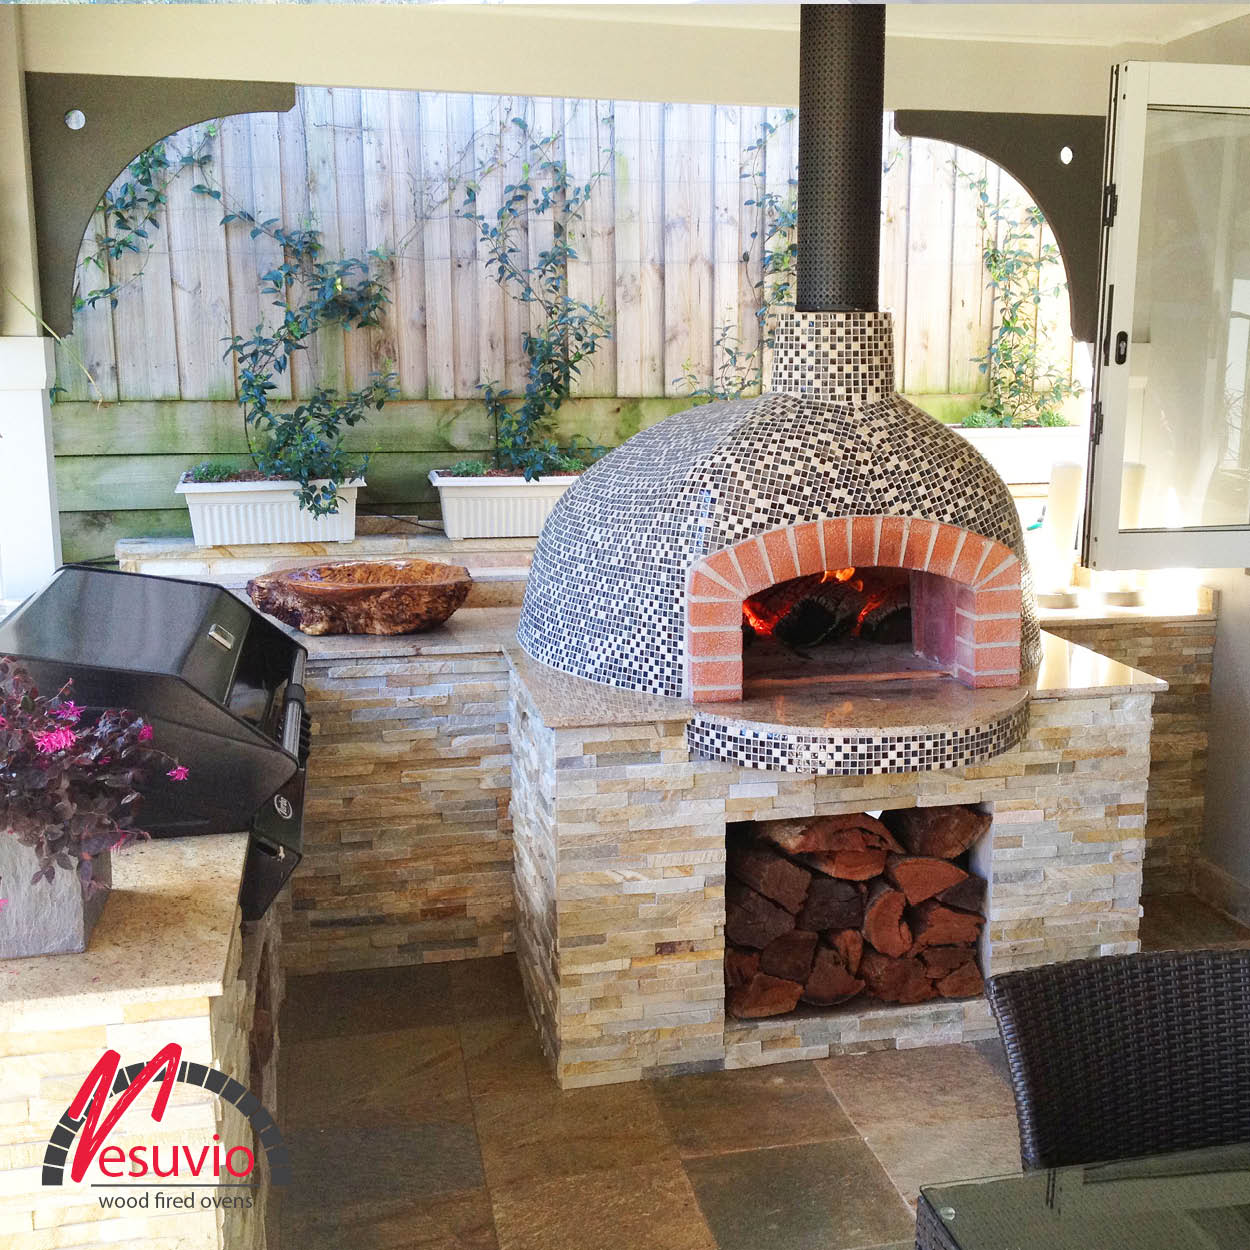 Mediterranean wood fired pizza oven - Residential_oven17 Vesuvio Valoriani Wood Fired Oven